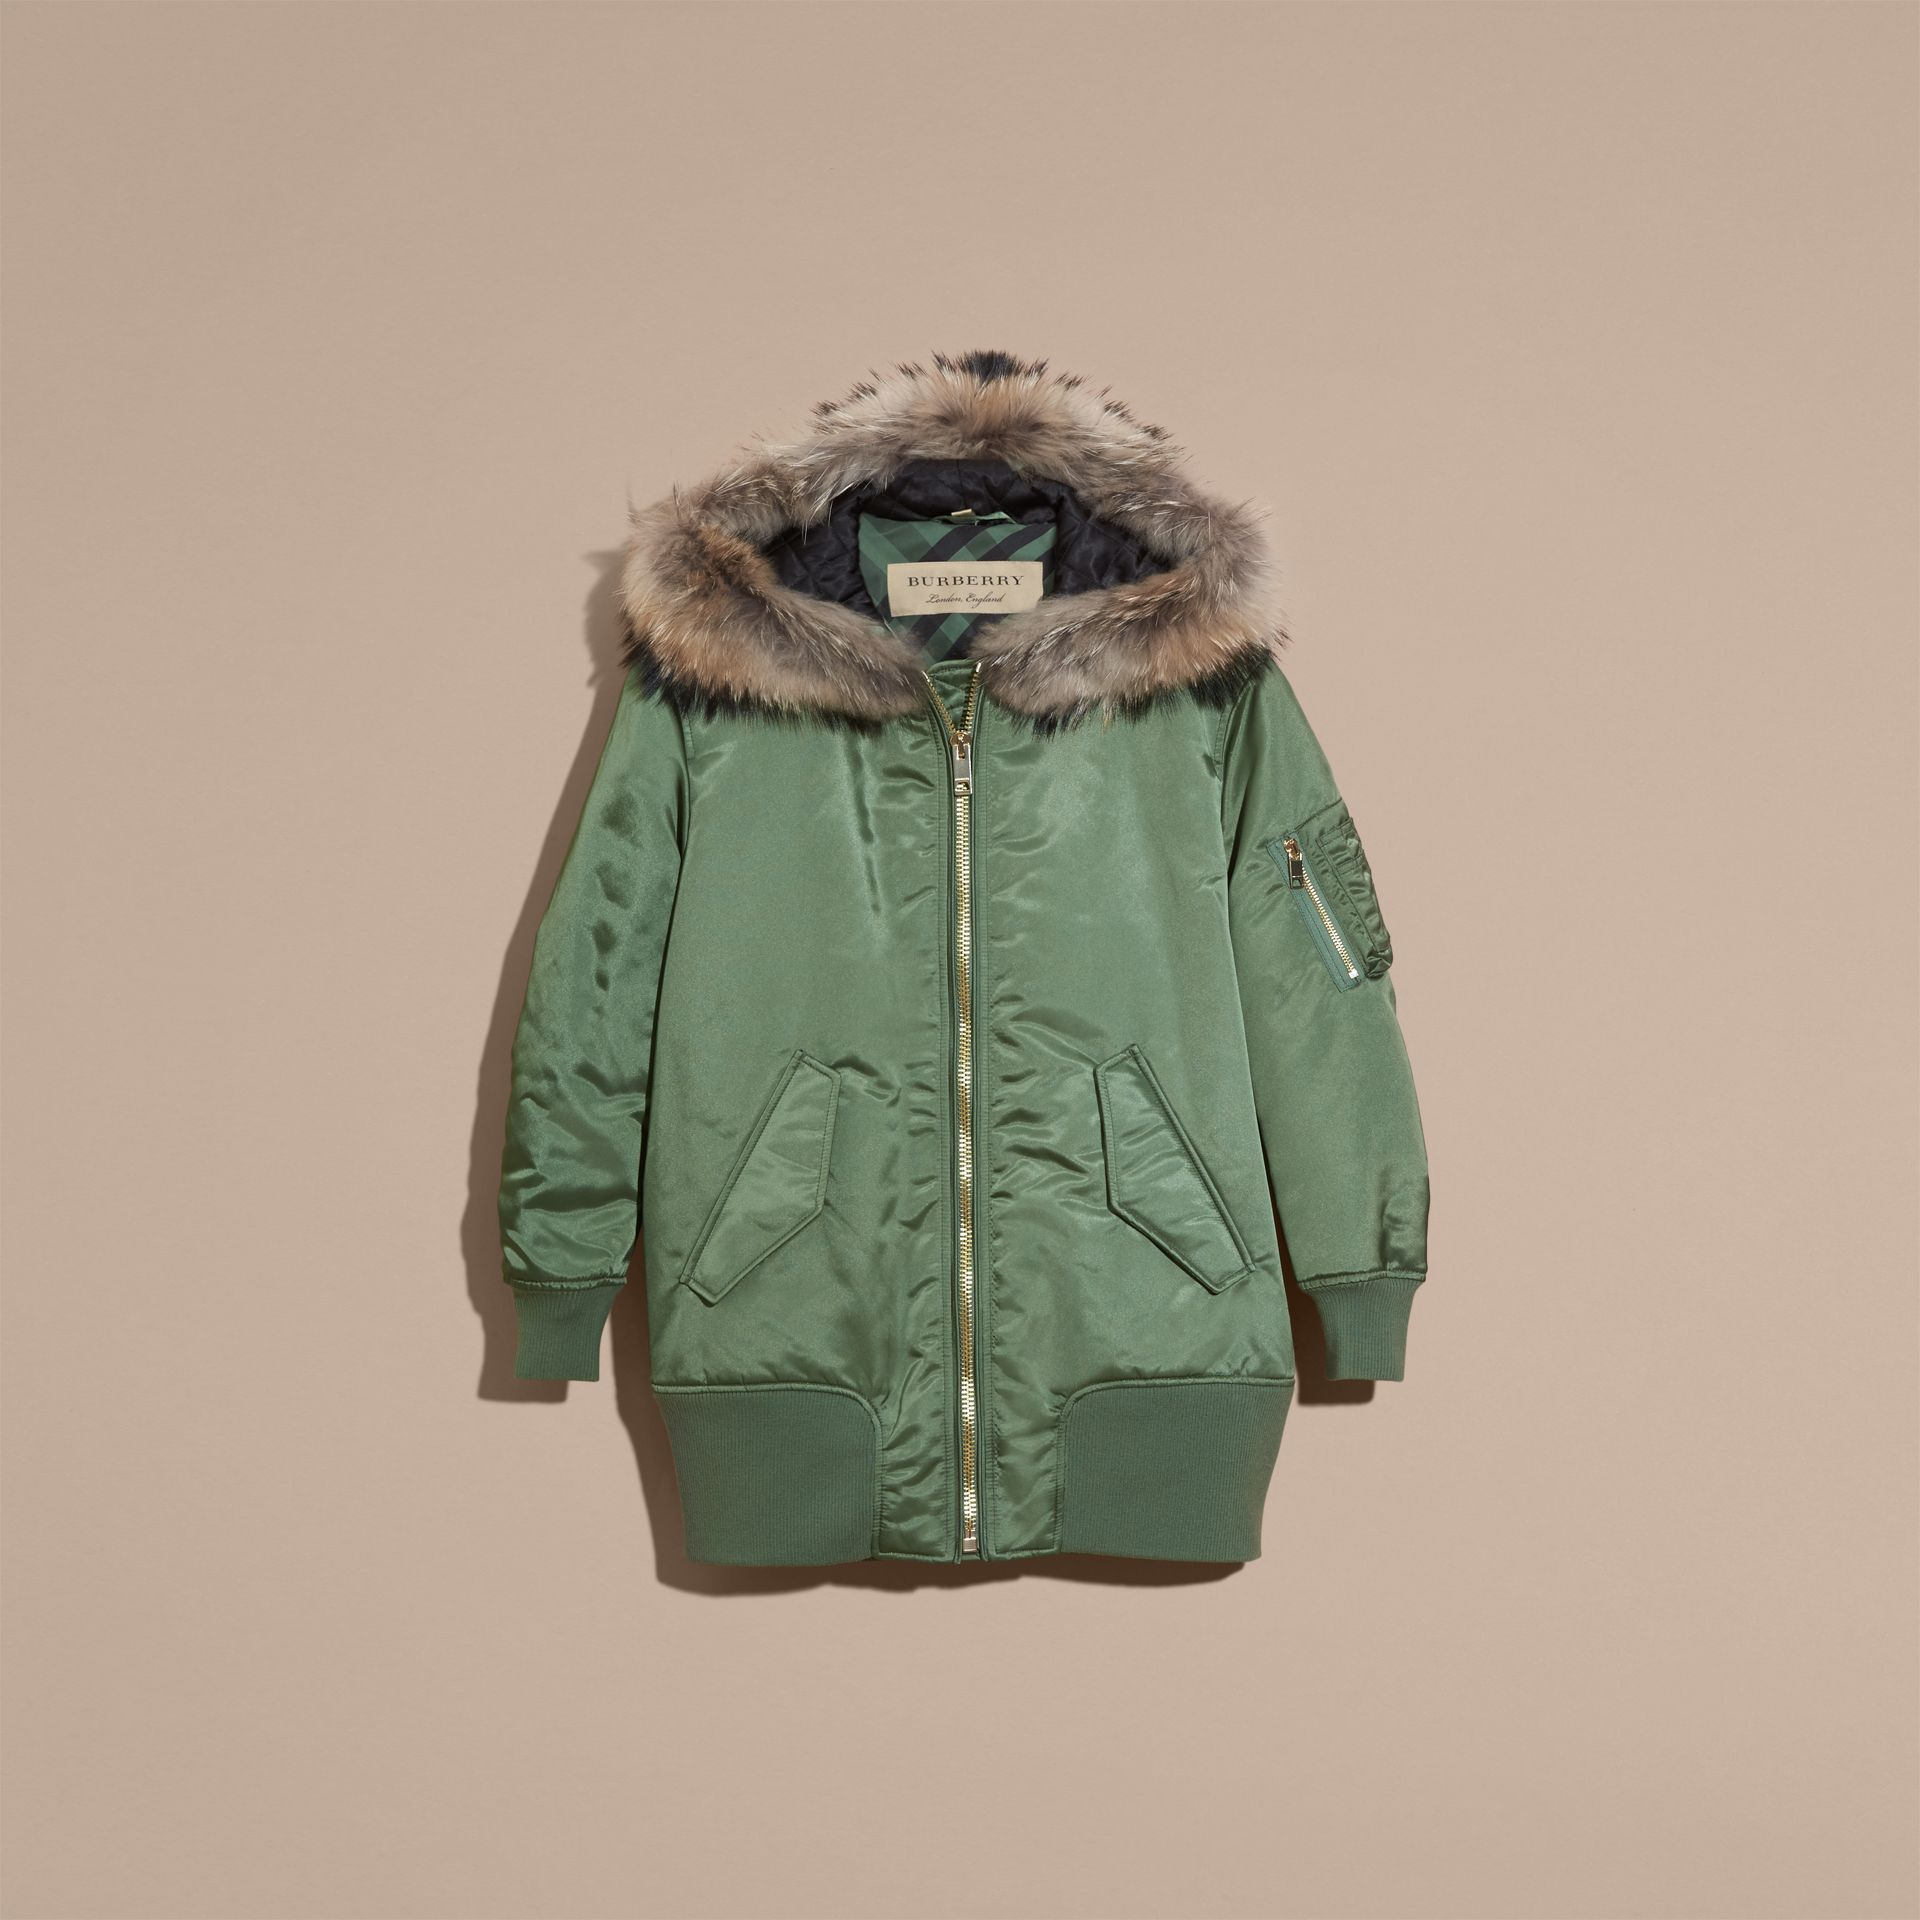 Eucalyptus green Long-line Satin Bomber Jacket with Fur-trimmed Hood Eucalyptus Green - gallery image 4